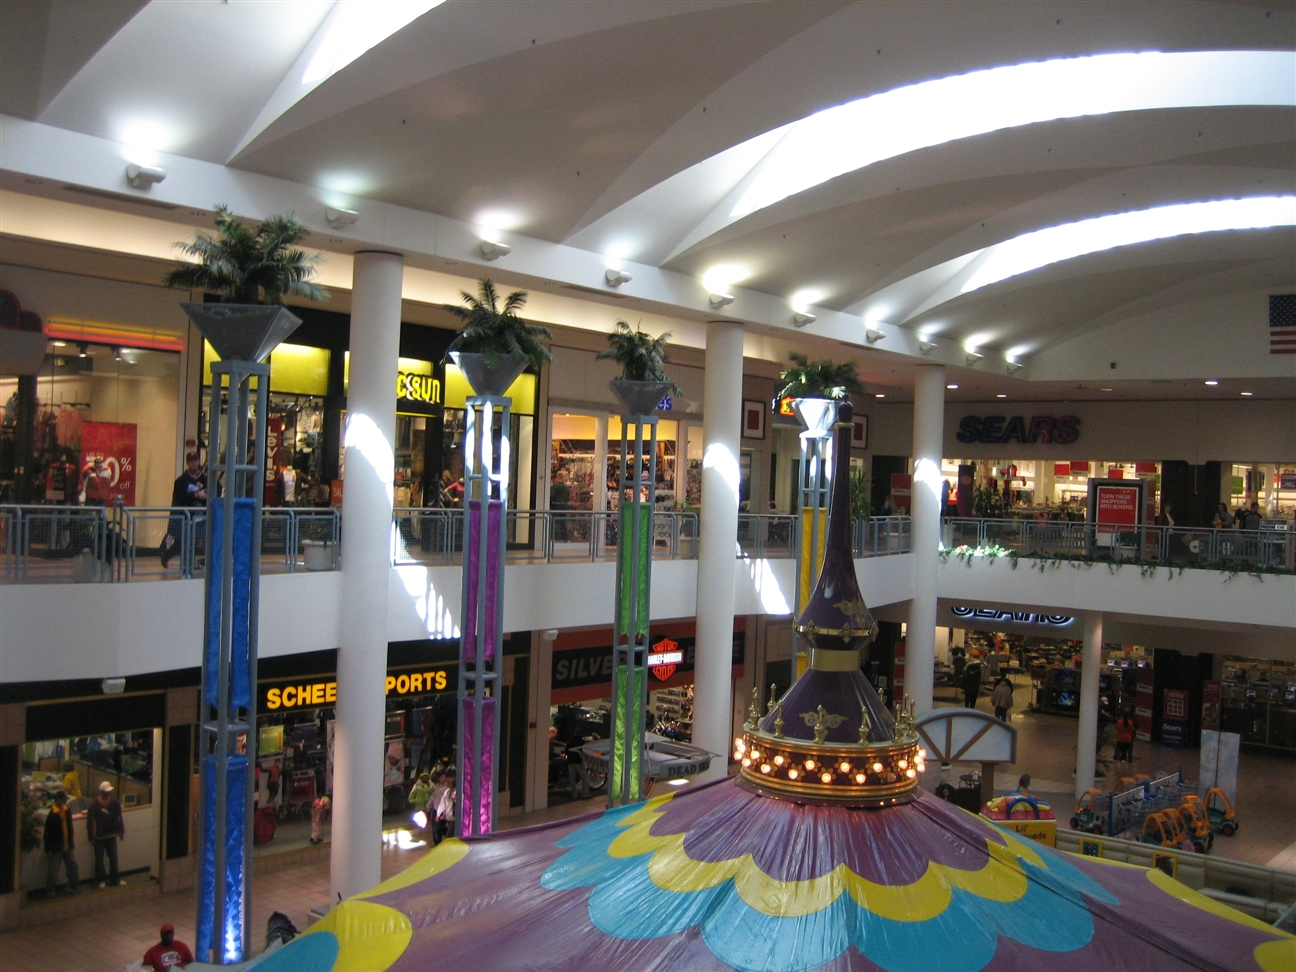 Images: Crossroads Mall